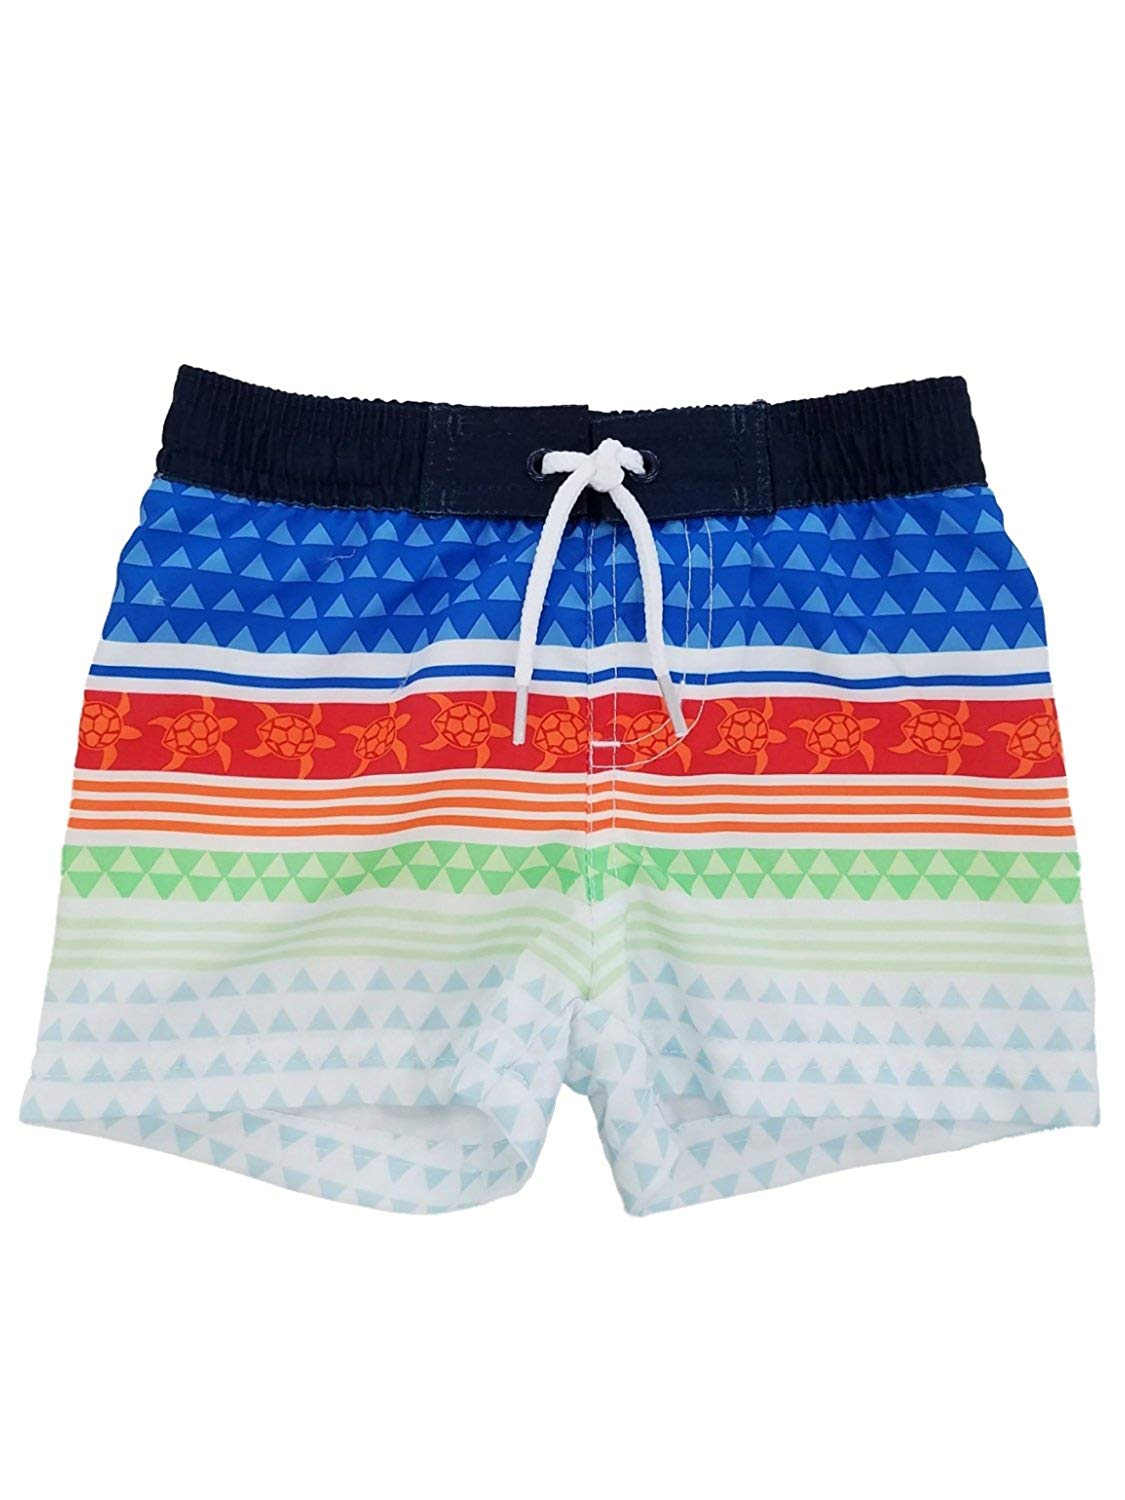 5d8a8cab4f Get Quotations · Koala Kids Infant Boys Multicolor Aztec Tropical Sea  Turtle Swim Trunks Board Shorts